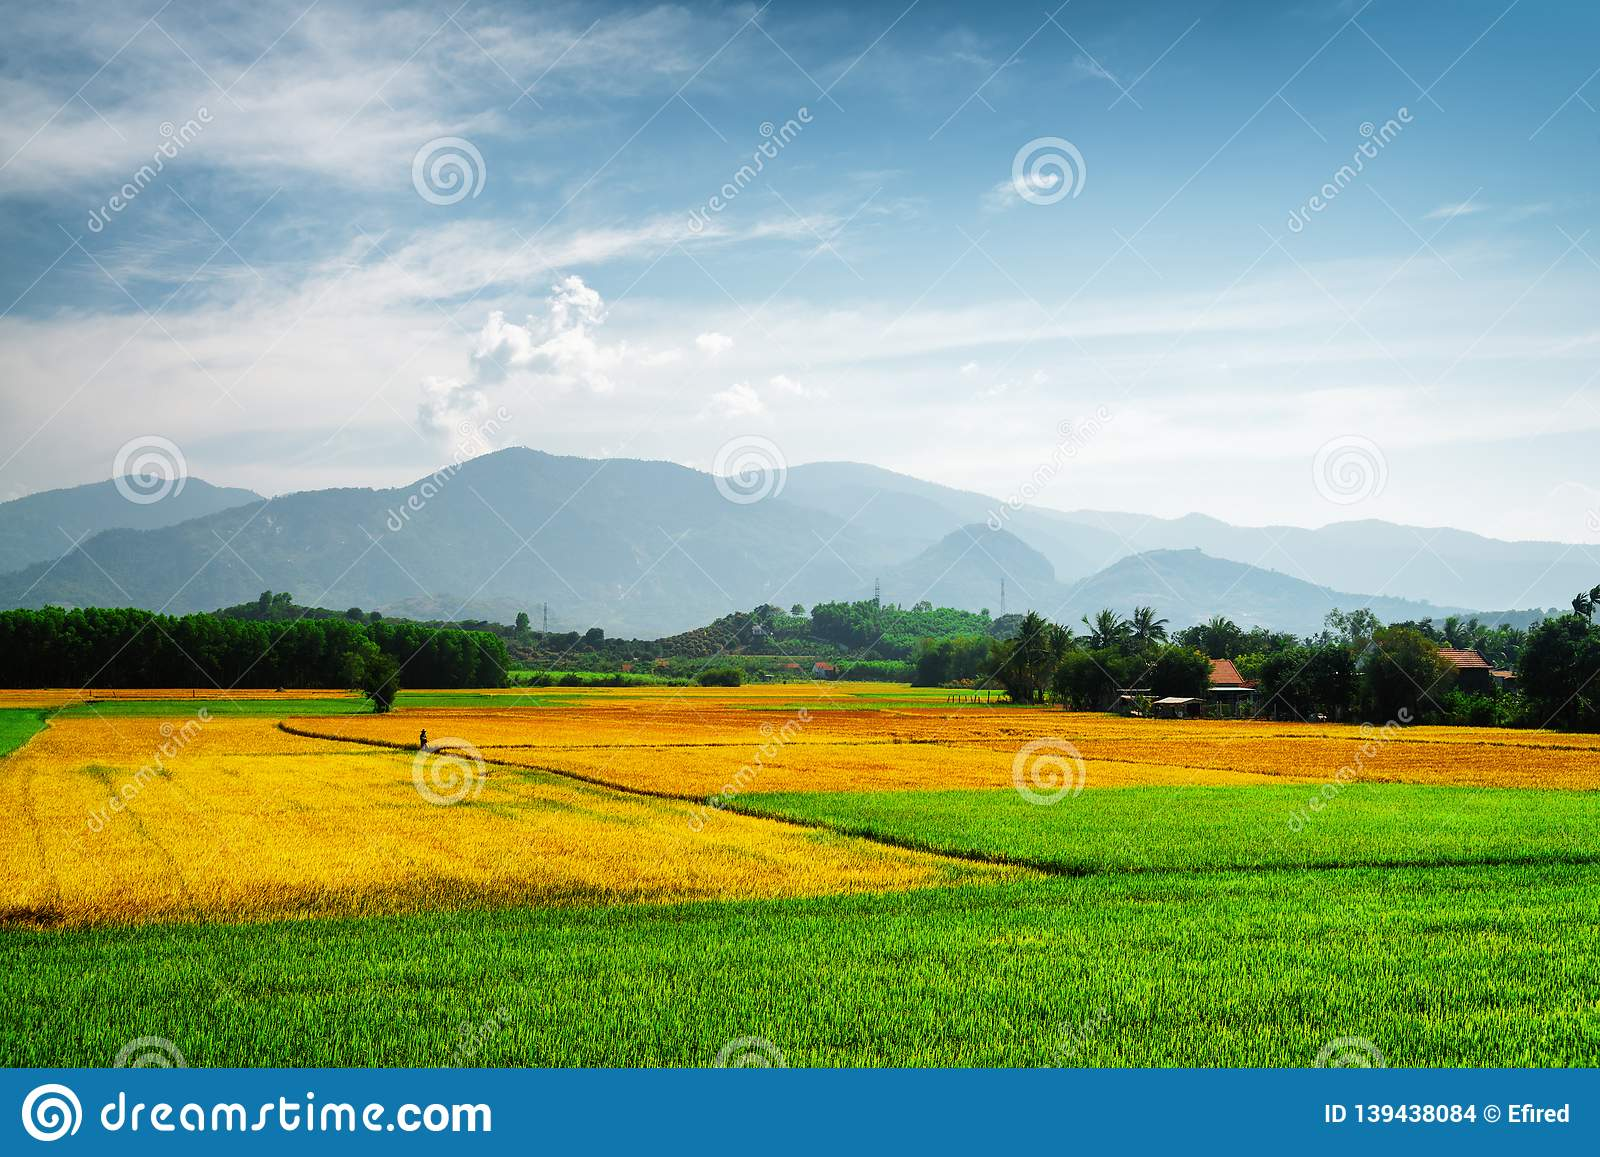 Scenic colorful rice fields at different stages of maturity